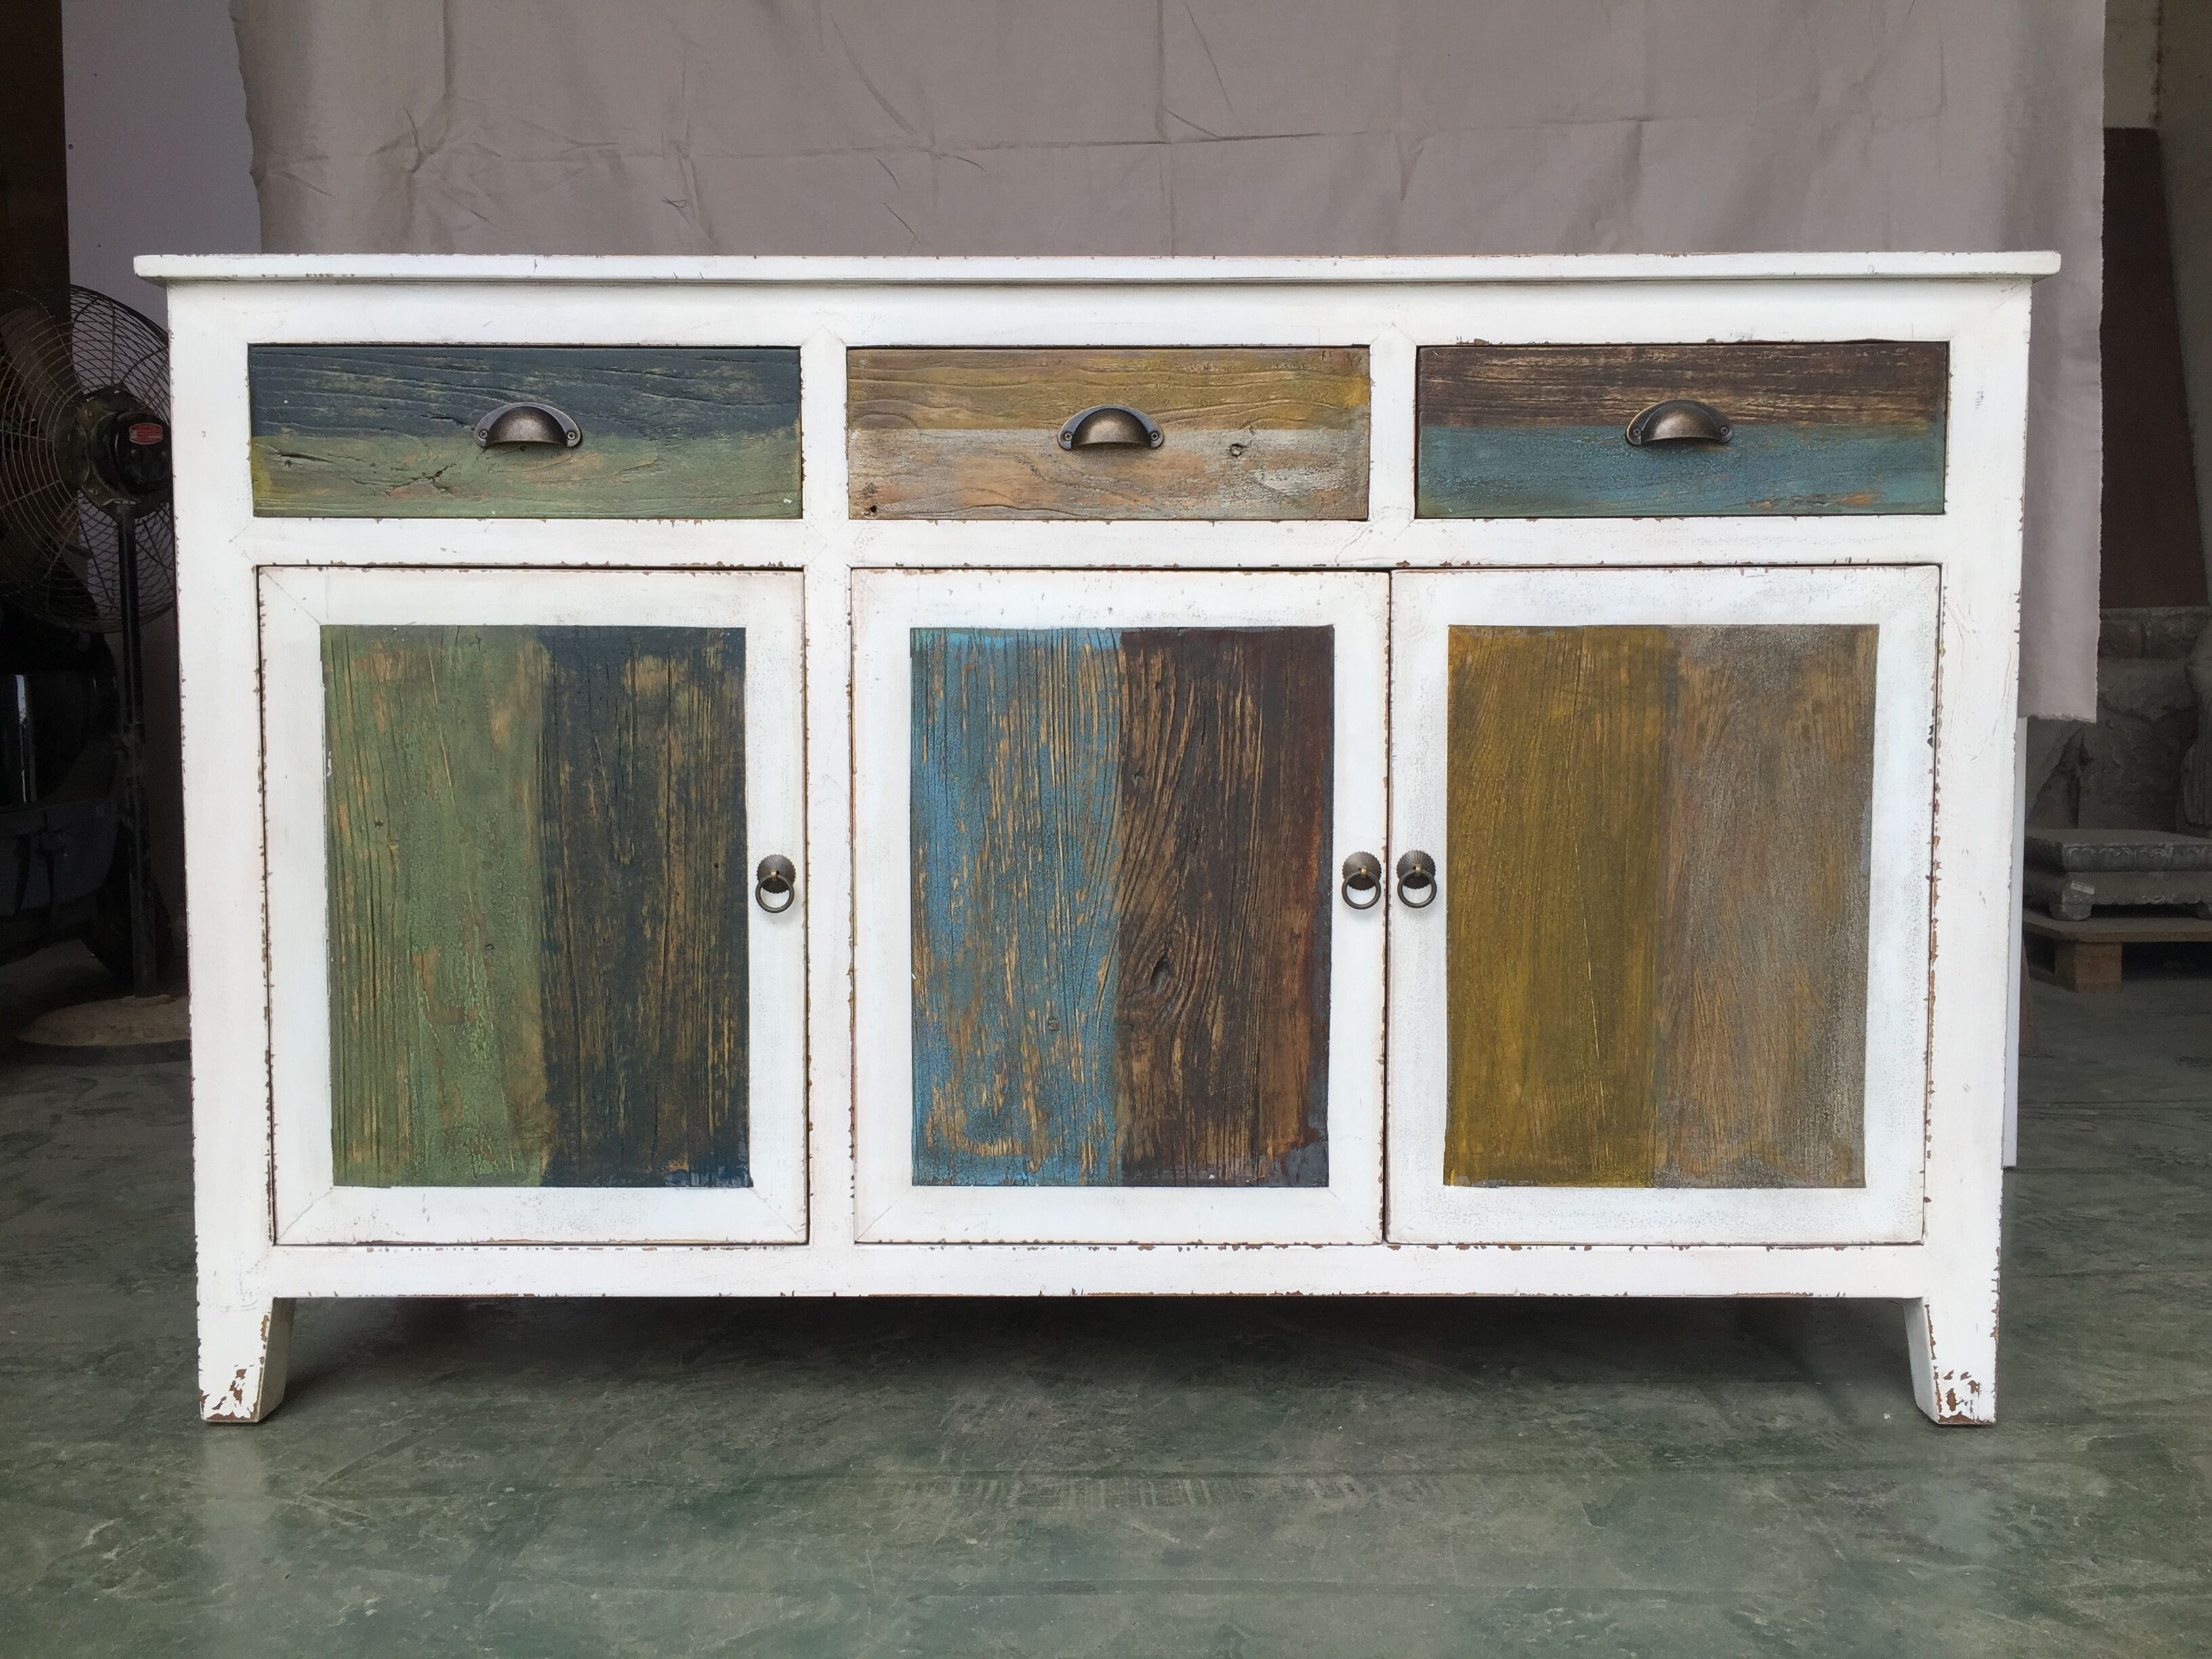 Rustic Distressed White Furniture With Multi-color Drawers